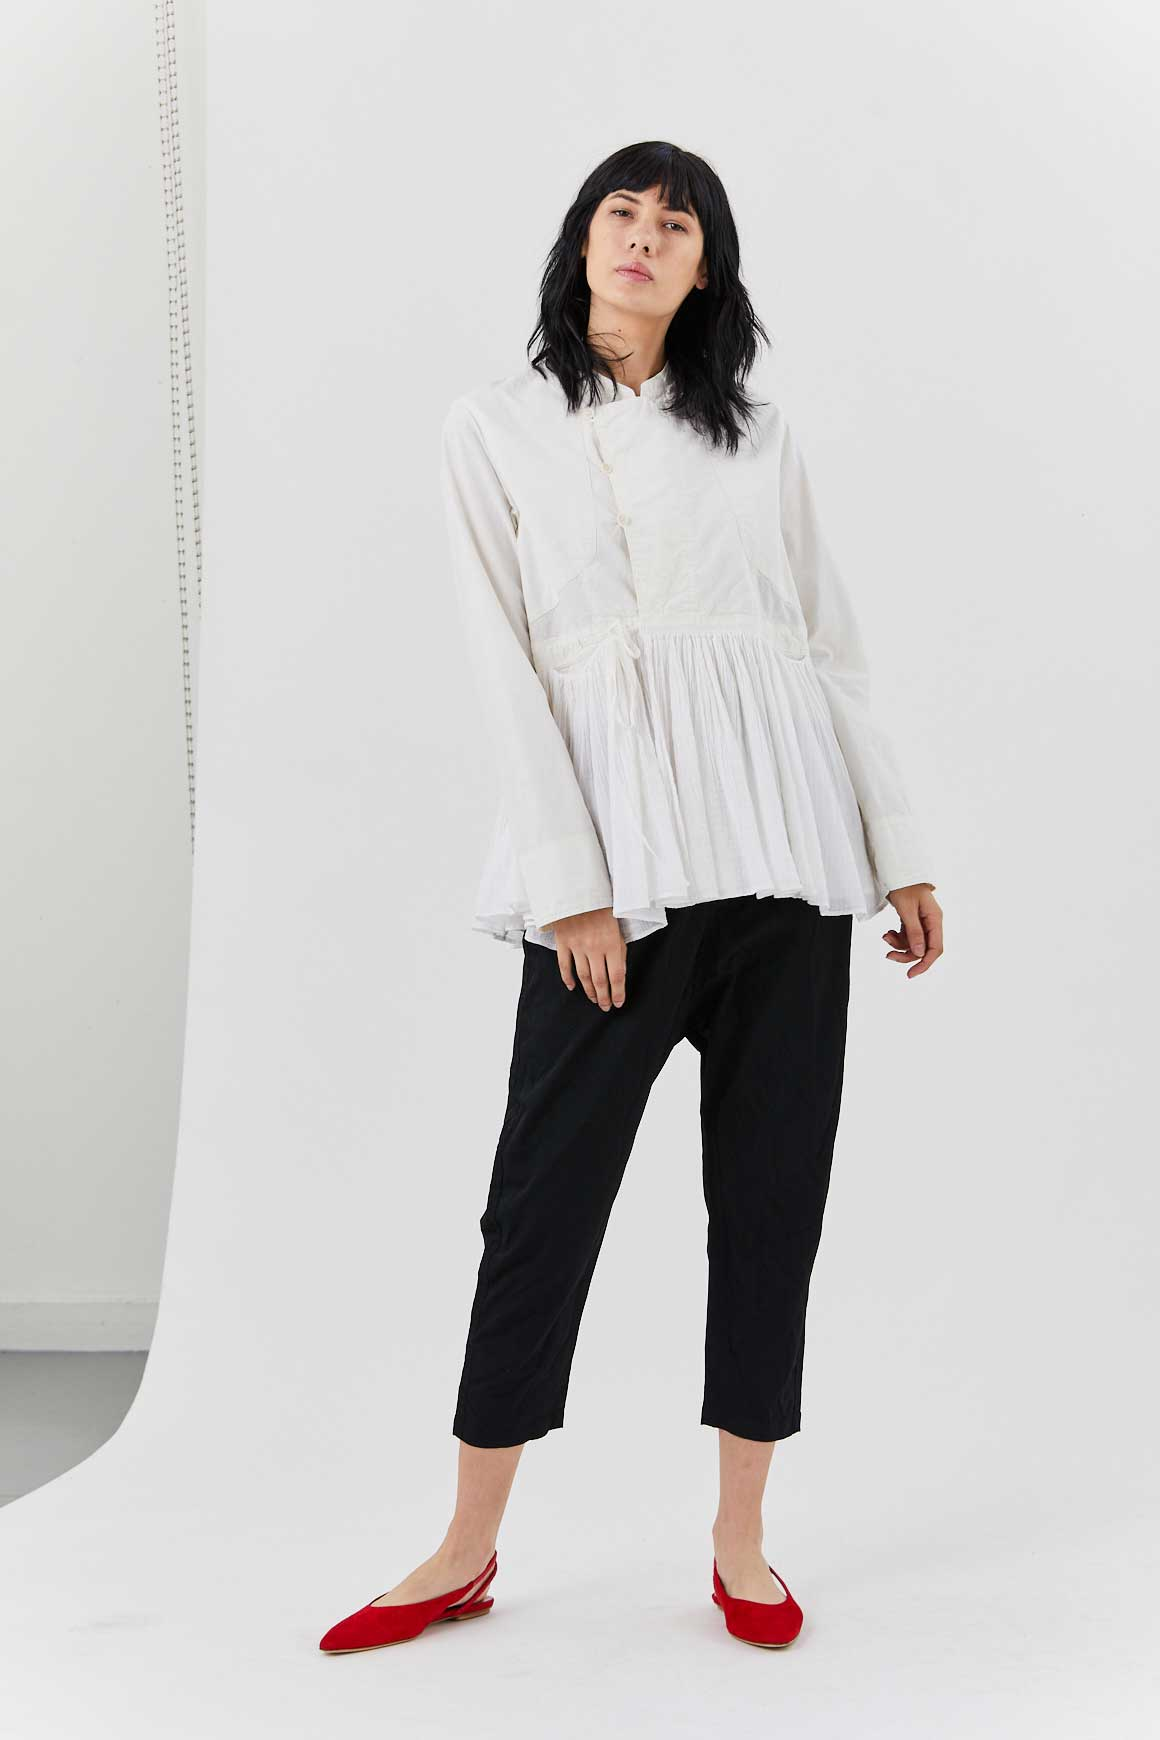 pas de calais - Blouse Jacket, White